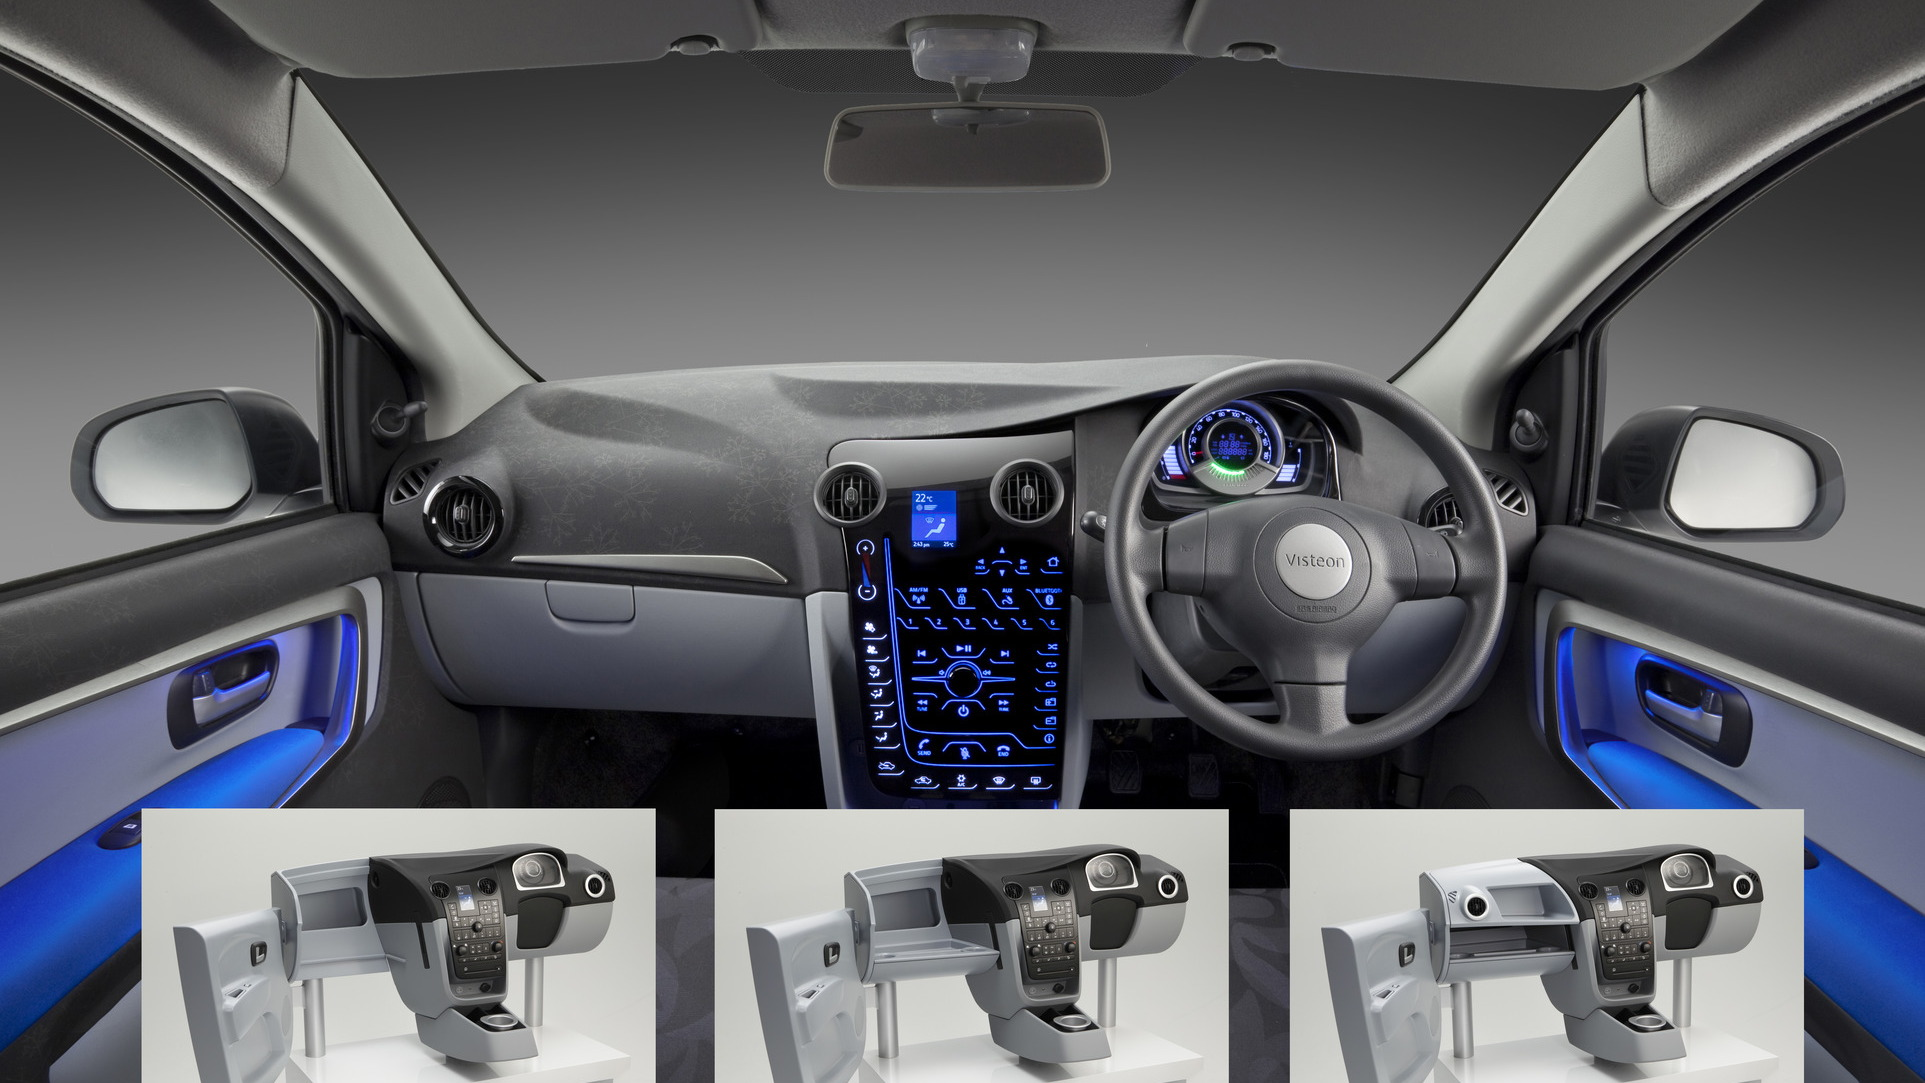 Visteon Growth Market concept car interior